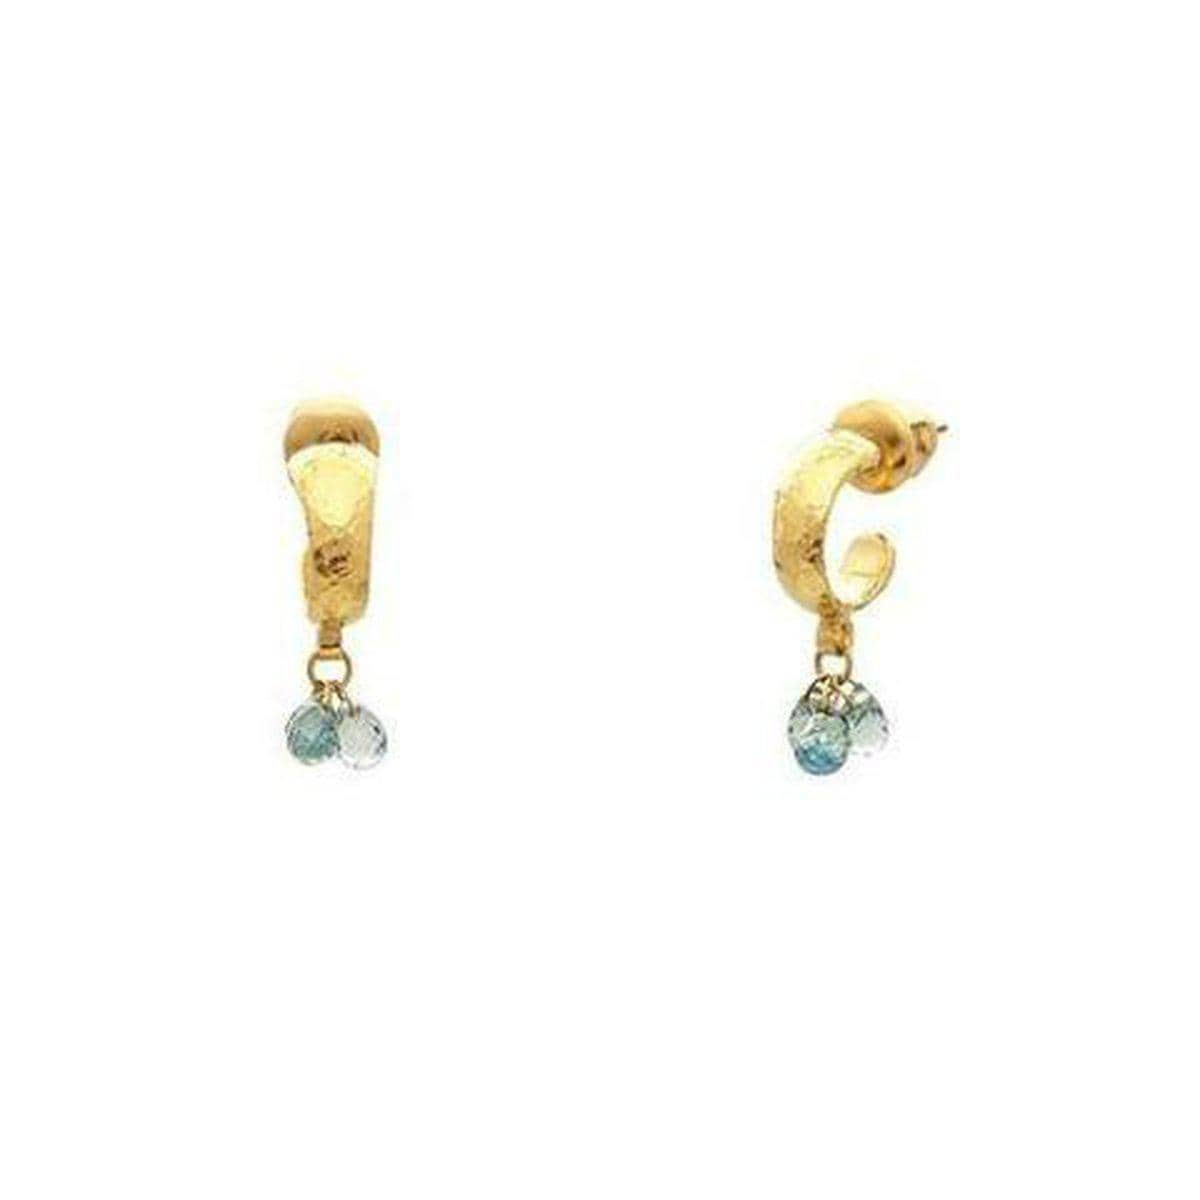 Delicate Hue 24K Gold Sapphire Earrings - DE957-FSB-3MX-BG-GURHAN-Renee Taylor Gallery